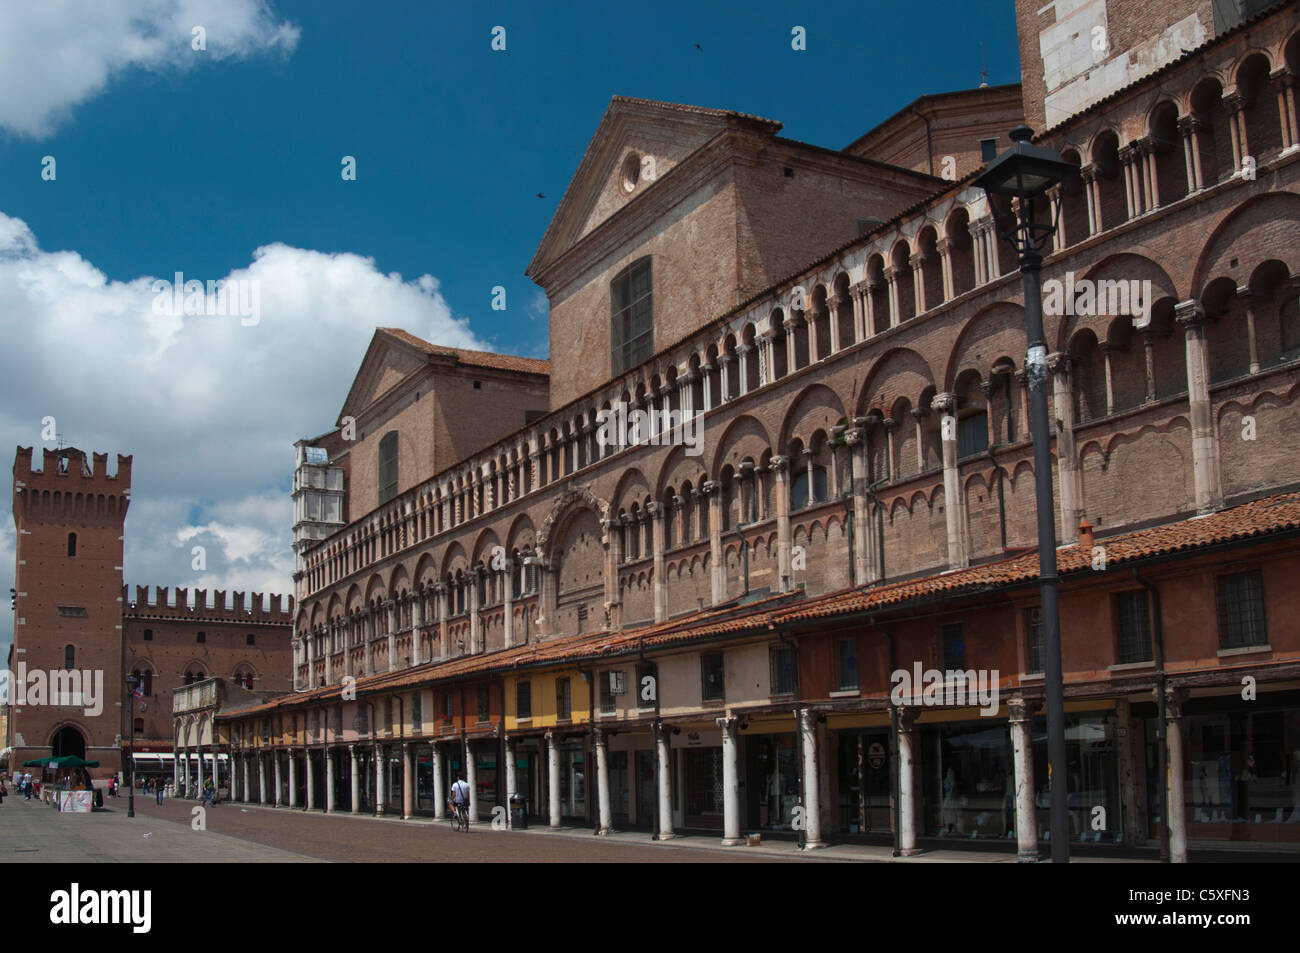 Hartmann Trento Colonnades E Stock Photos Colonnades E Stock Images Alamy